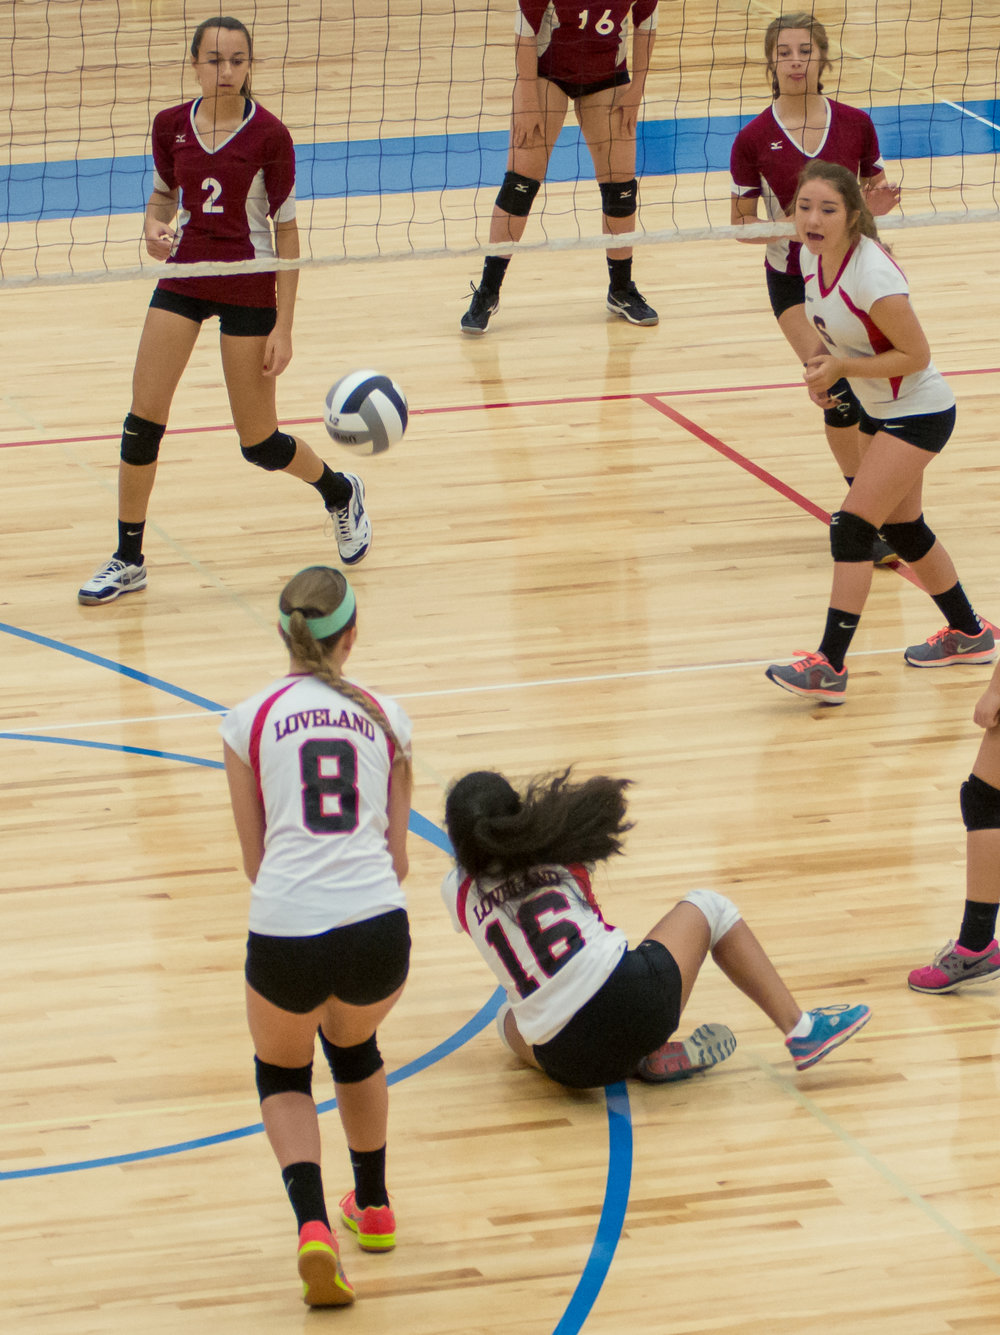 20160917-LHS Volleyball - Poudre Challenge-PMG_3320.jpg